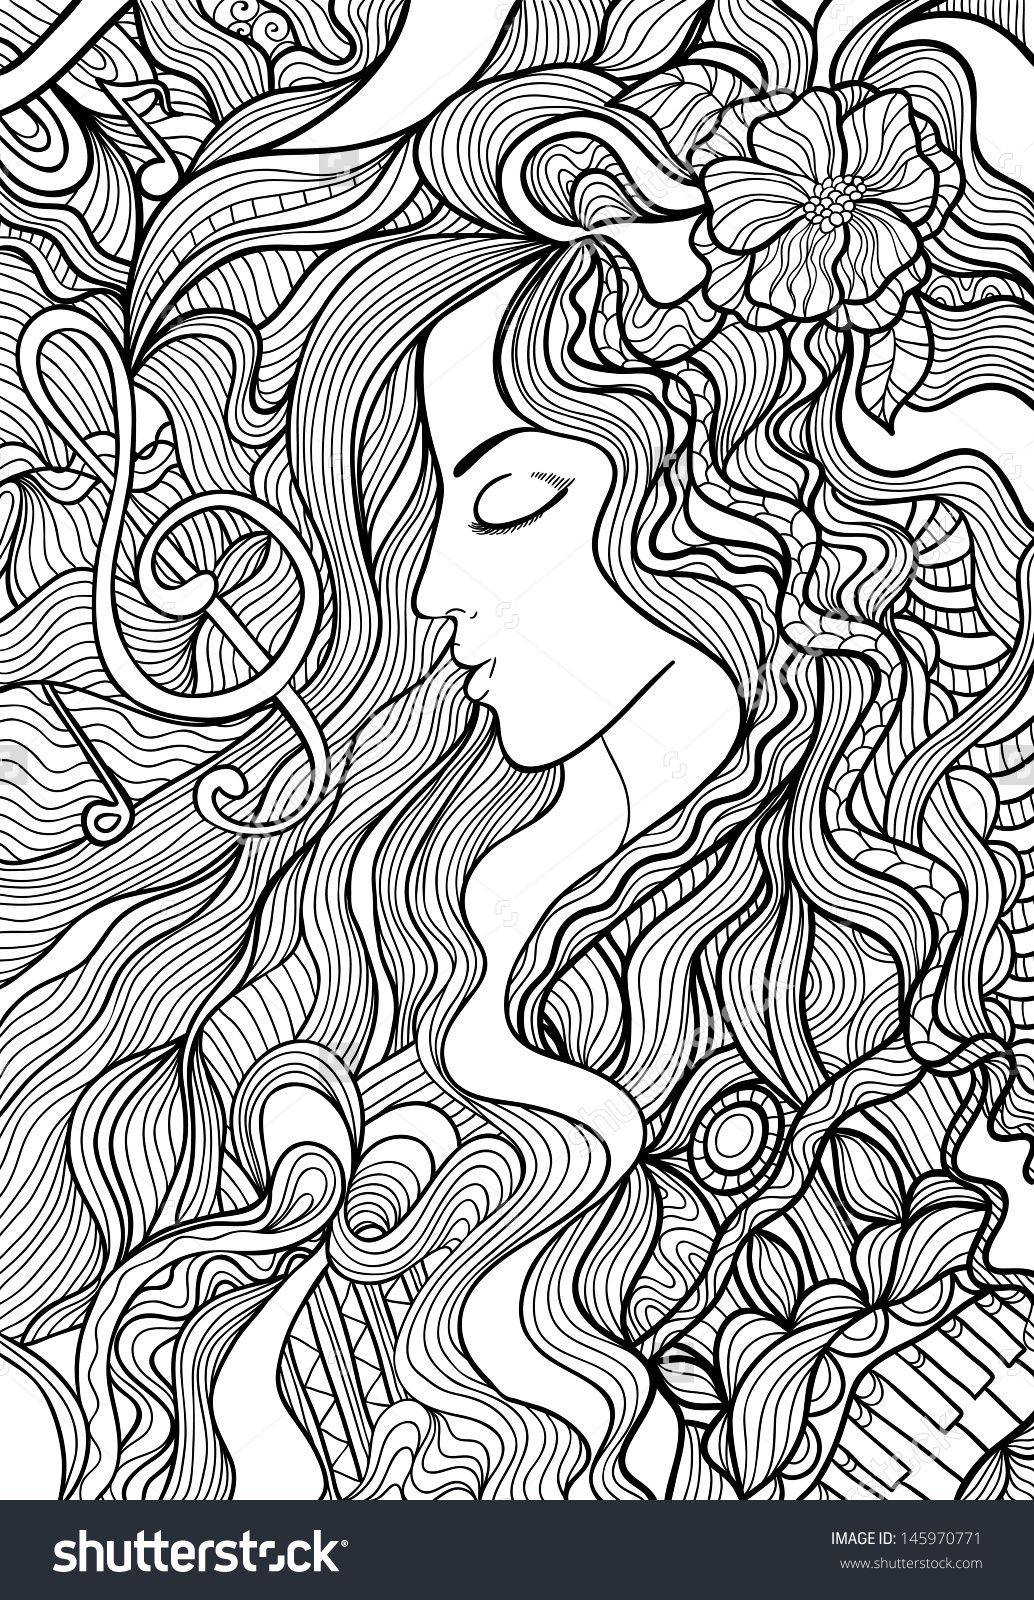 Black And White Outline Vector Illustration Of A Beautiful